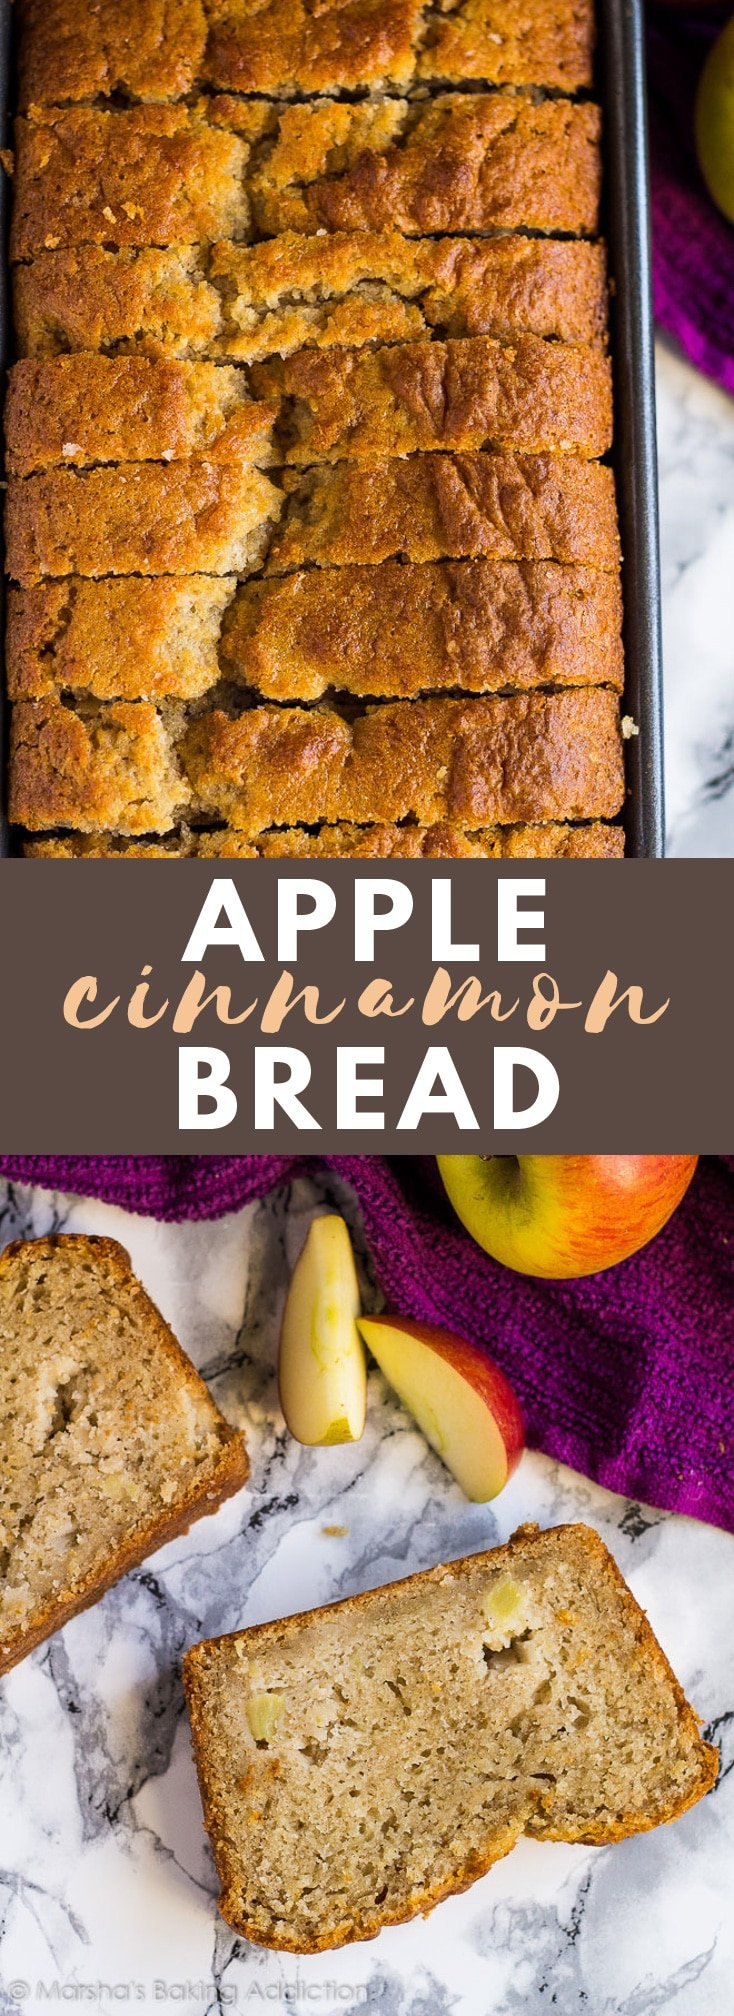 Apple Cinnamon Bread – Incredible moist and delicious cinnamon-spiced bread studded with juicy apple chunks. Perfect with your morning tea or coffee!